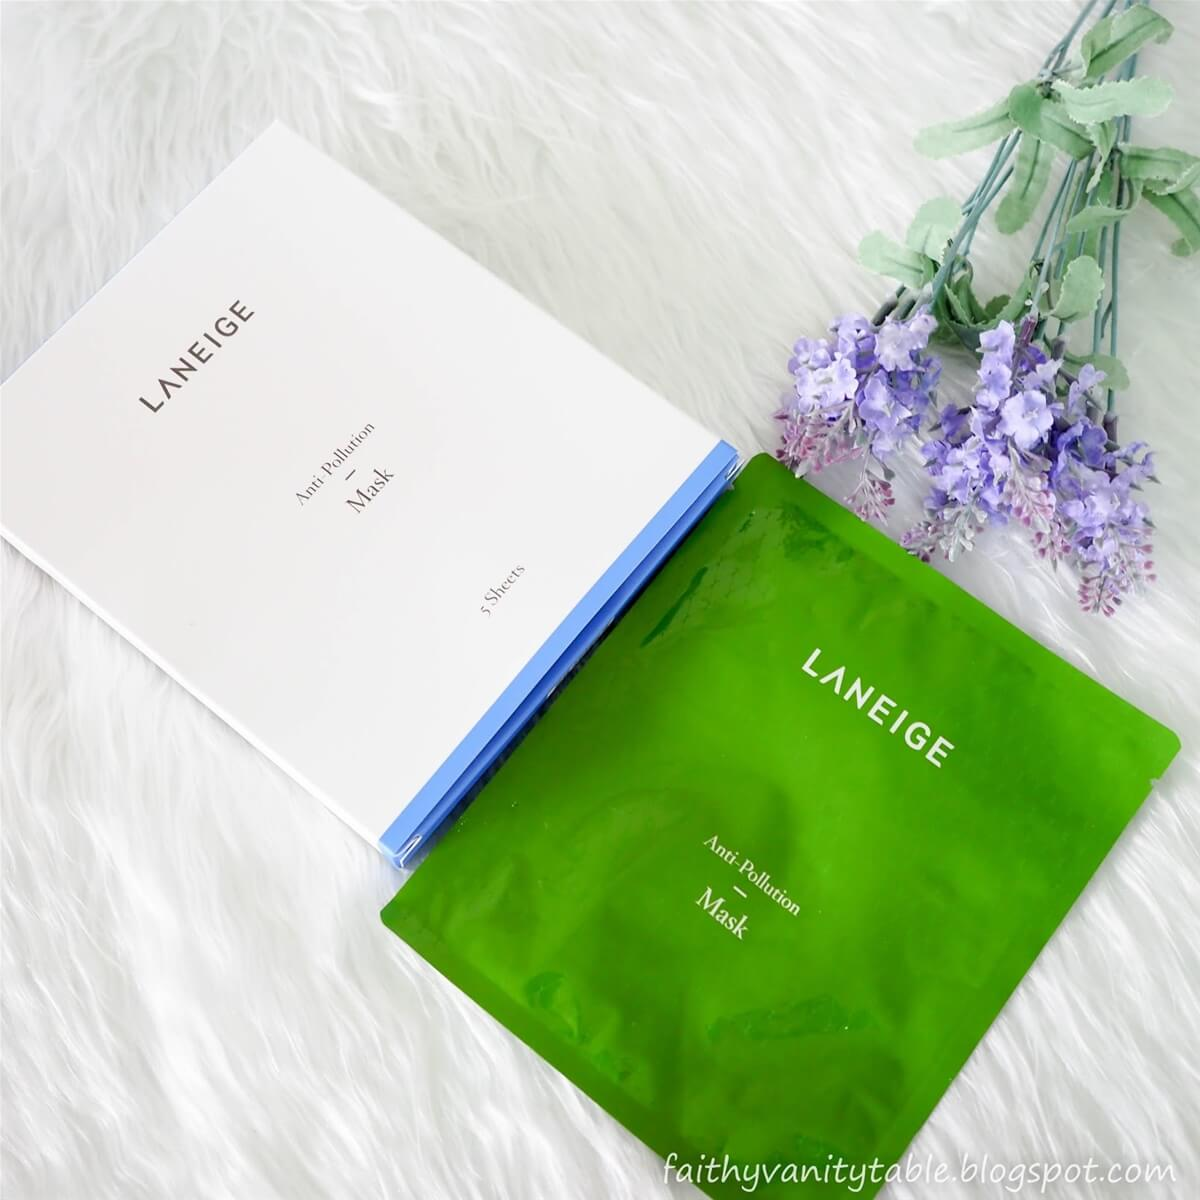 Mặt Nạ Giấy Laneige